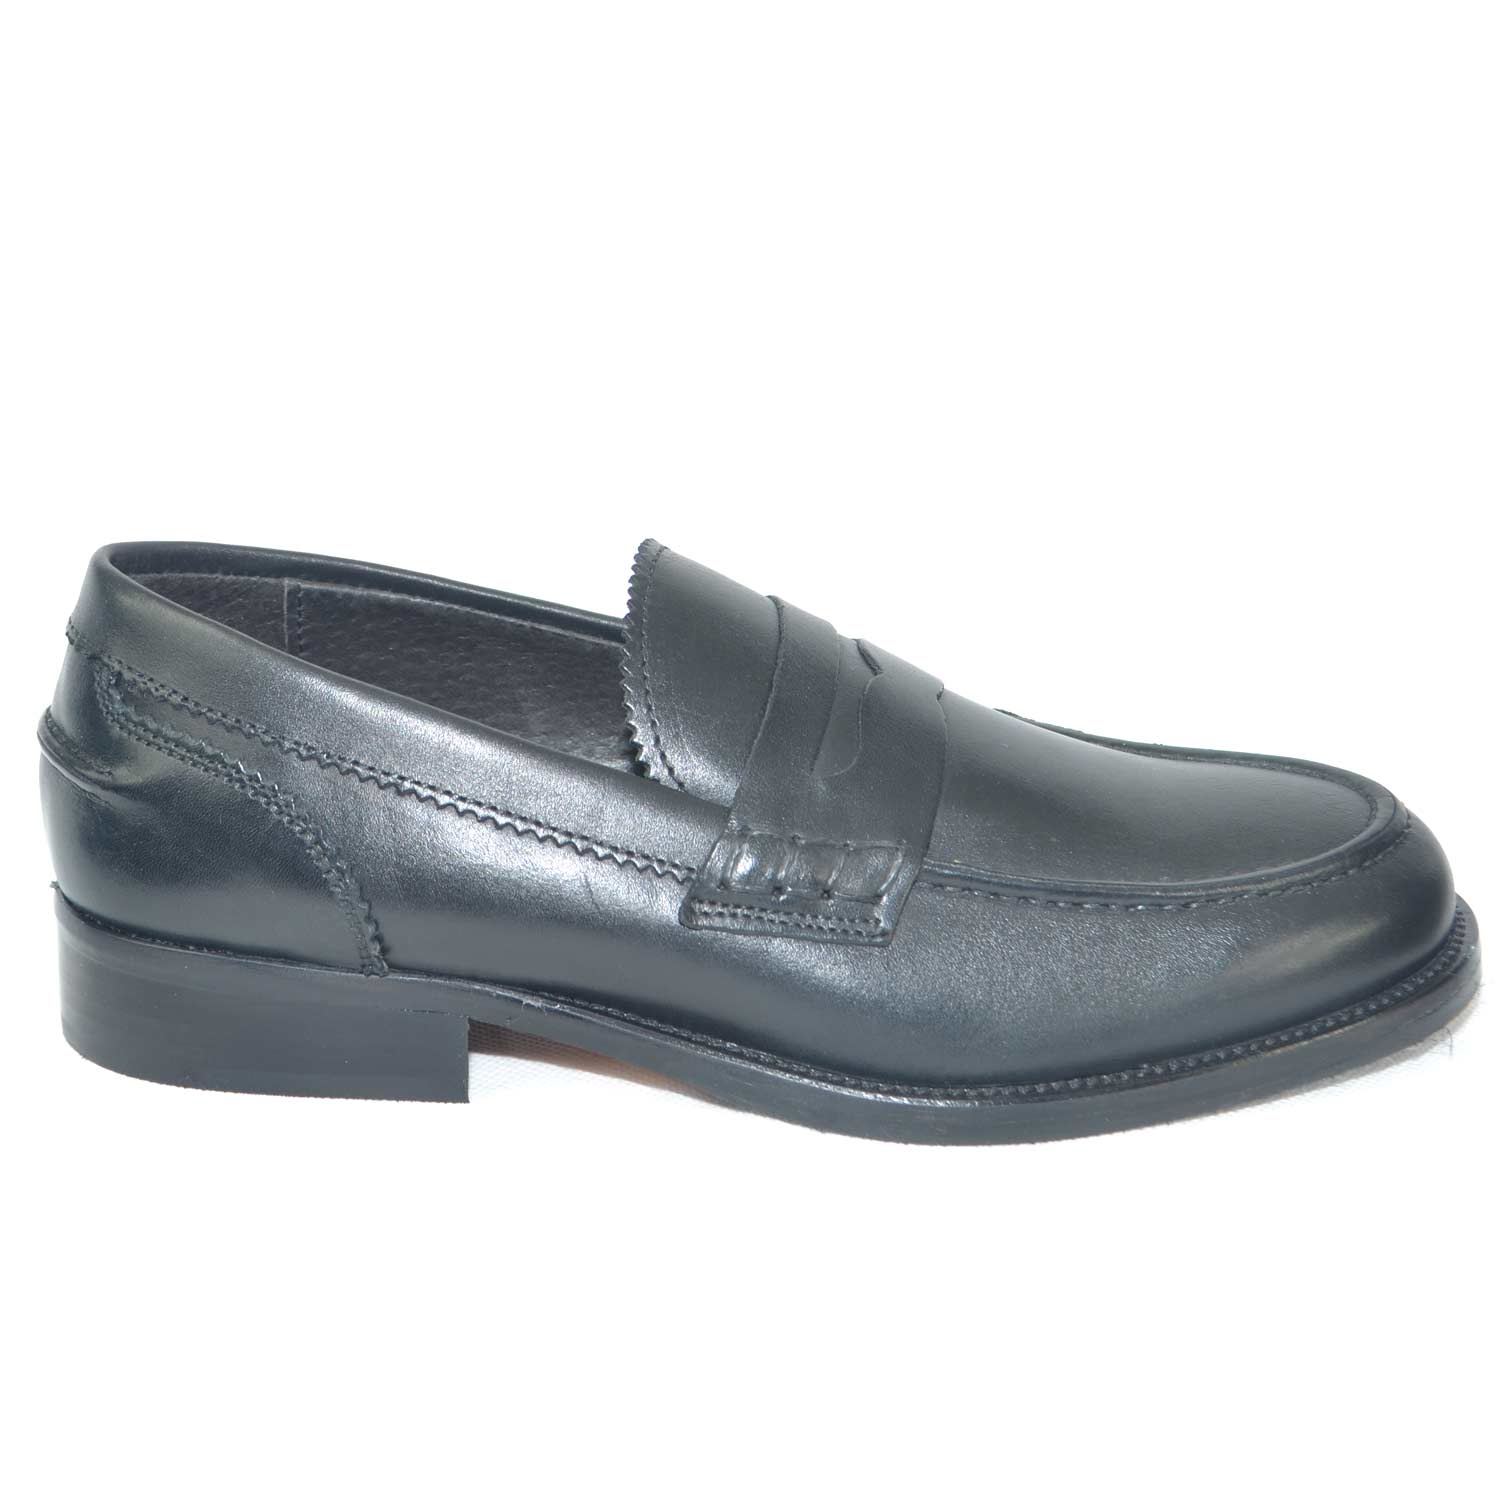 Scarpe uomo mocassini inglese college vera pelle crust nero made in italy fondo classico sportivo genuine leather